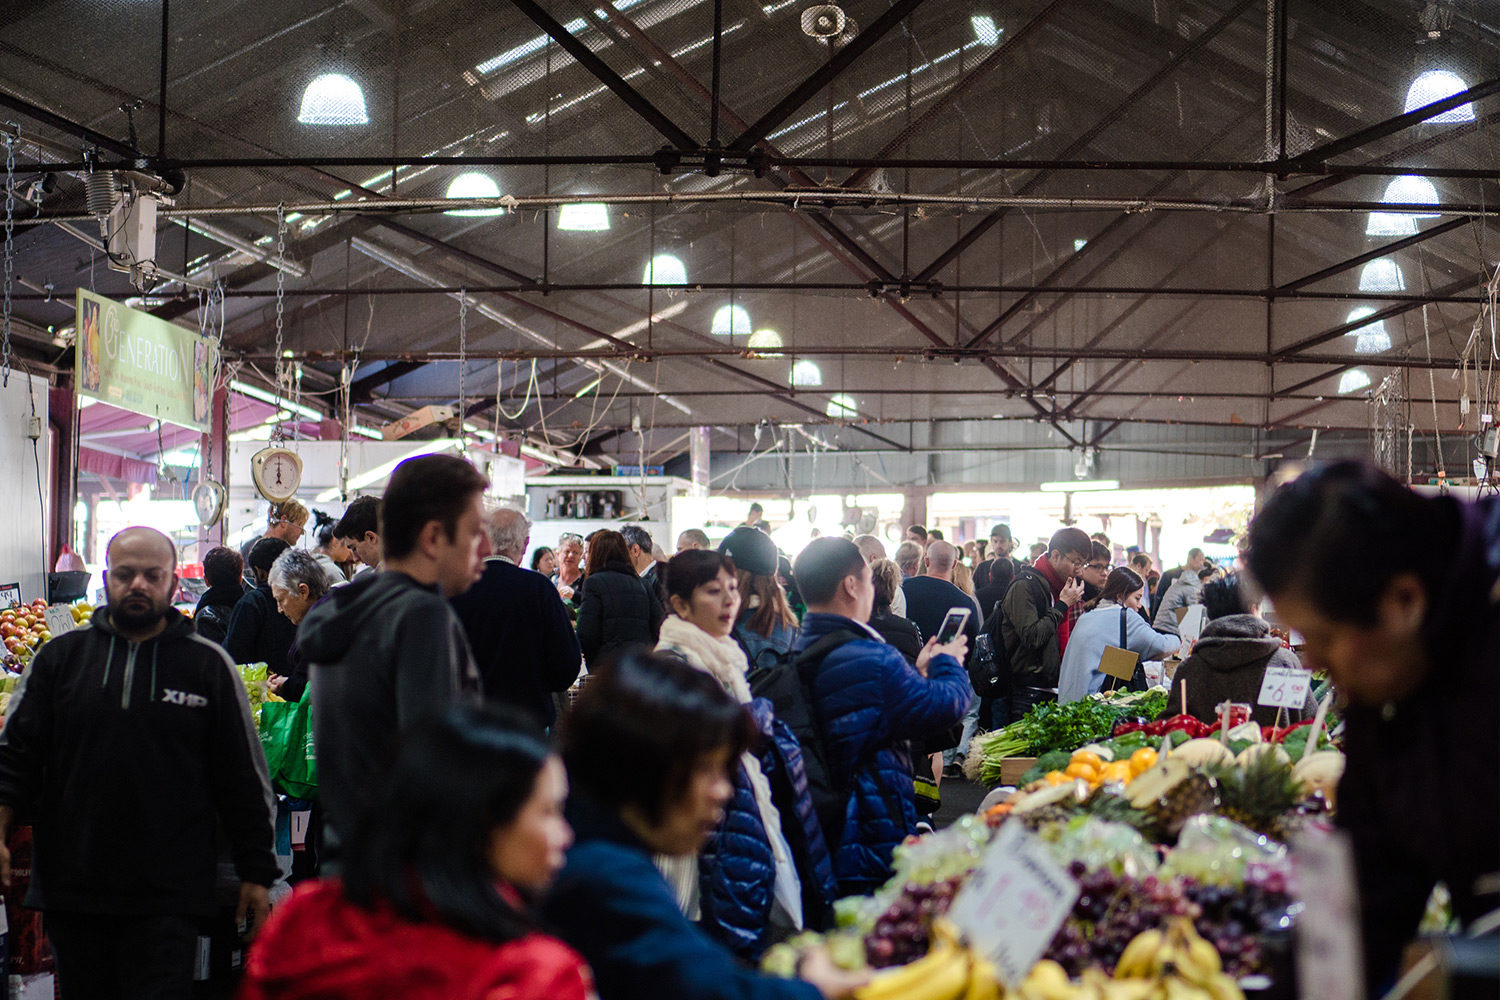 The Queen Victoria Market Fruit and Vegetable Stalls